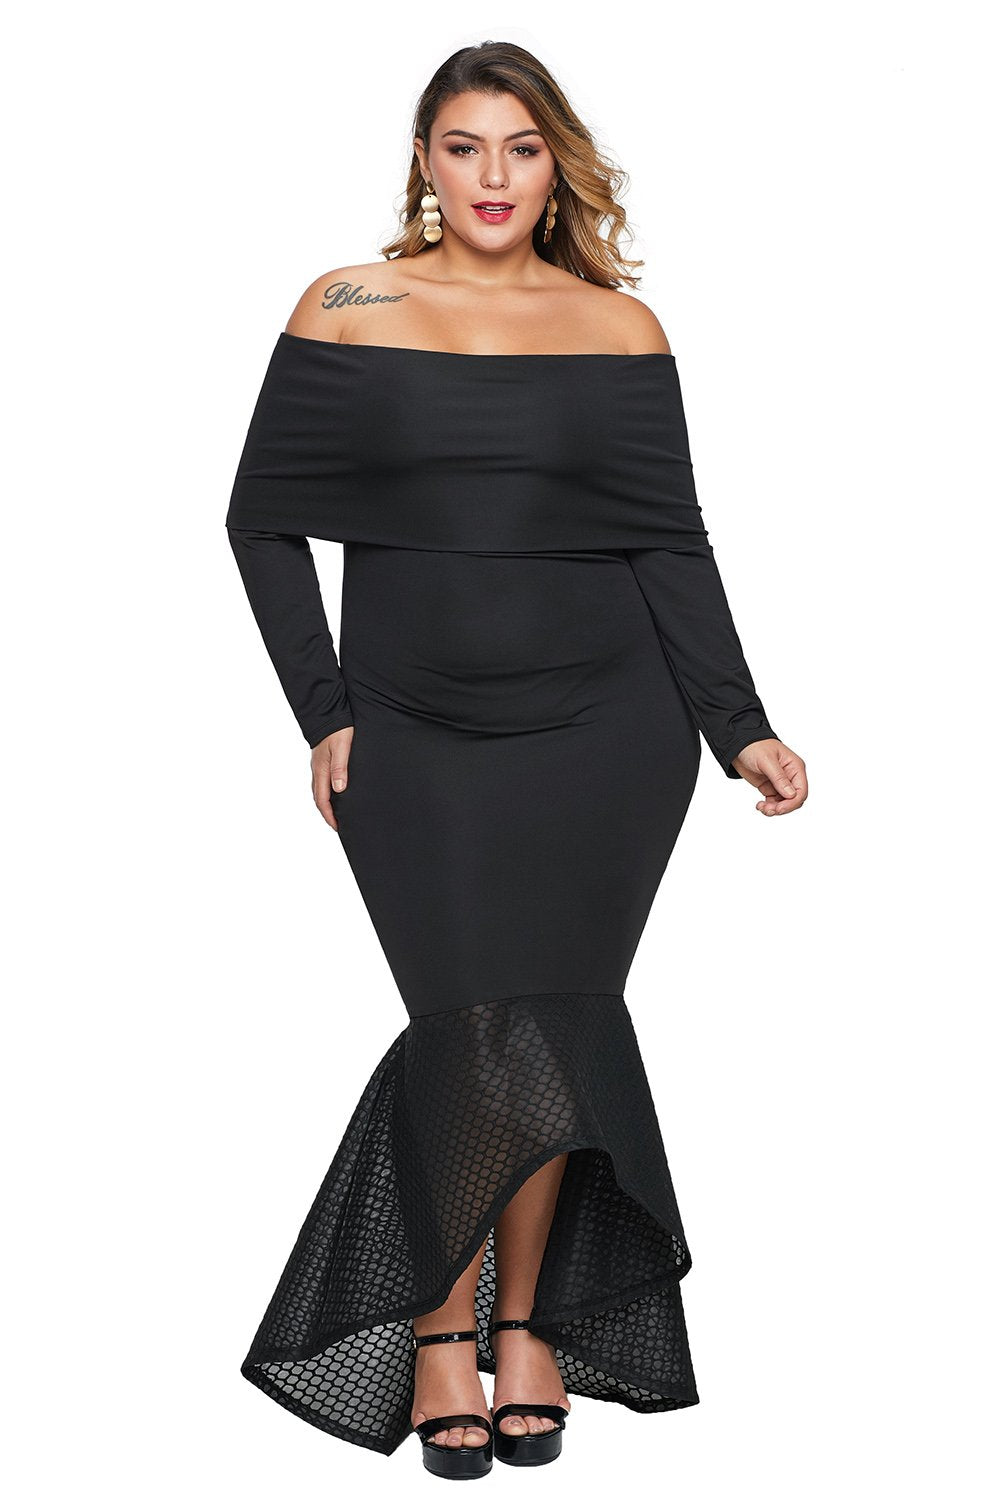 Black Overlay Off Shoulder Fishtail Plus Size Maxi Party Dress - Winter Haven Co